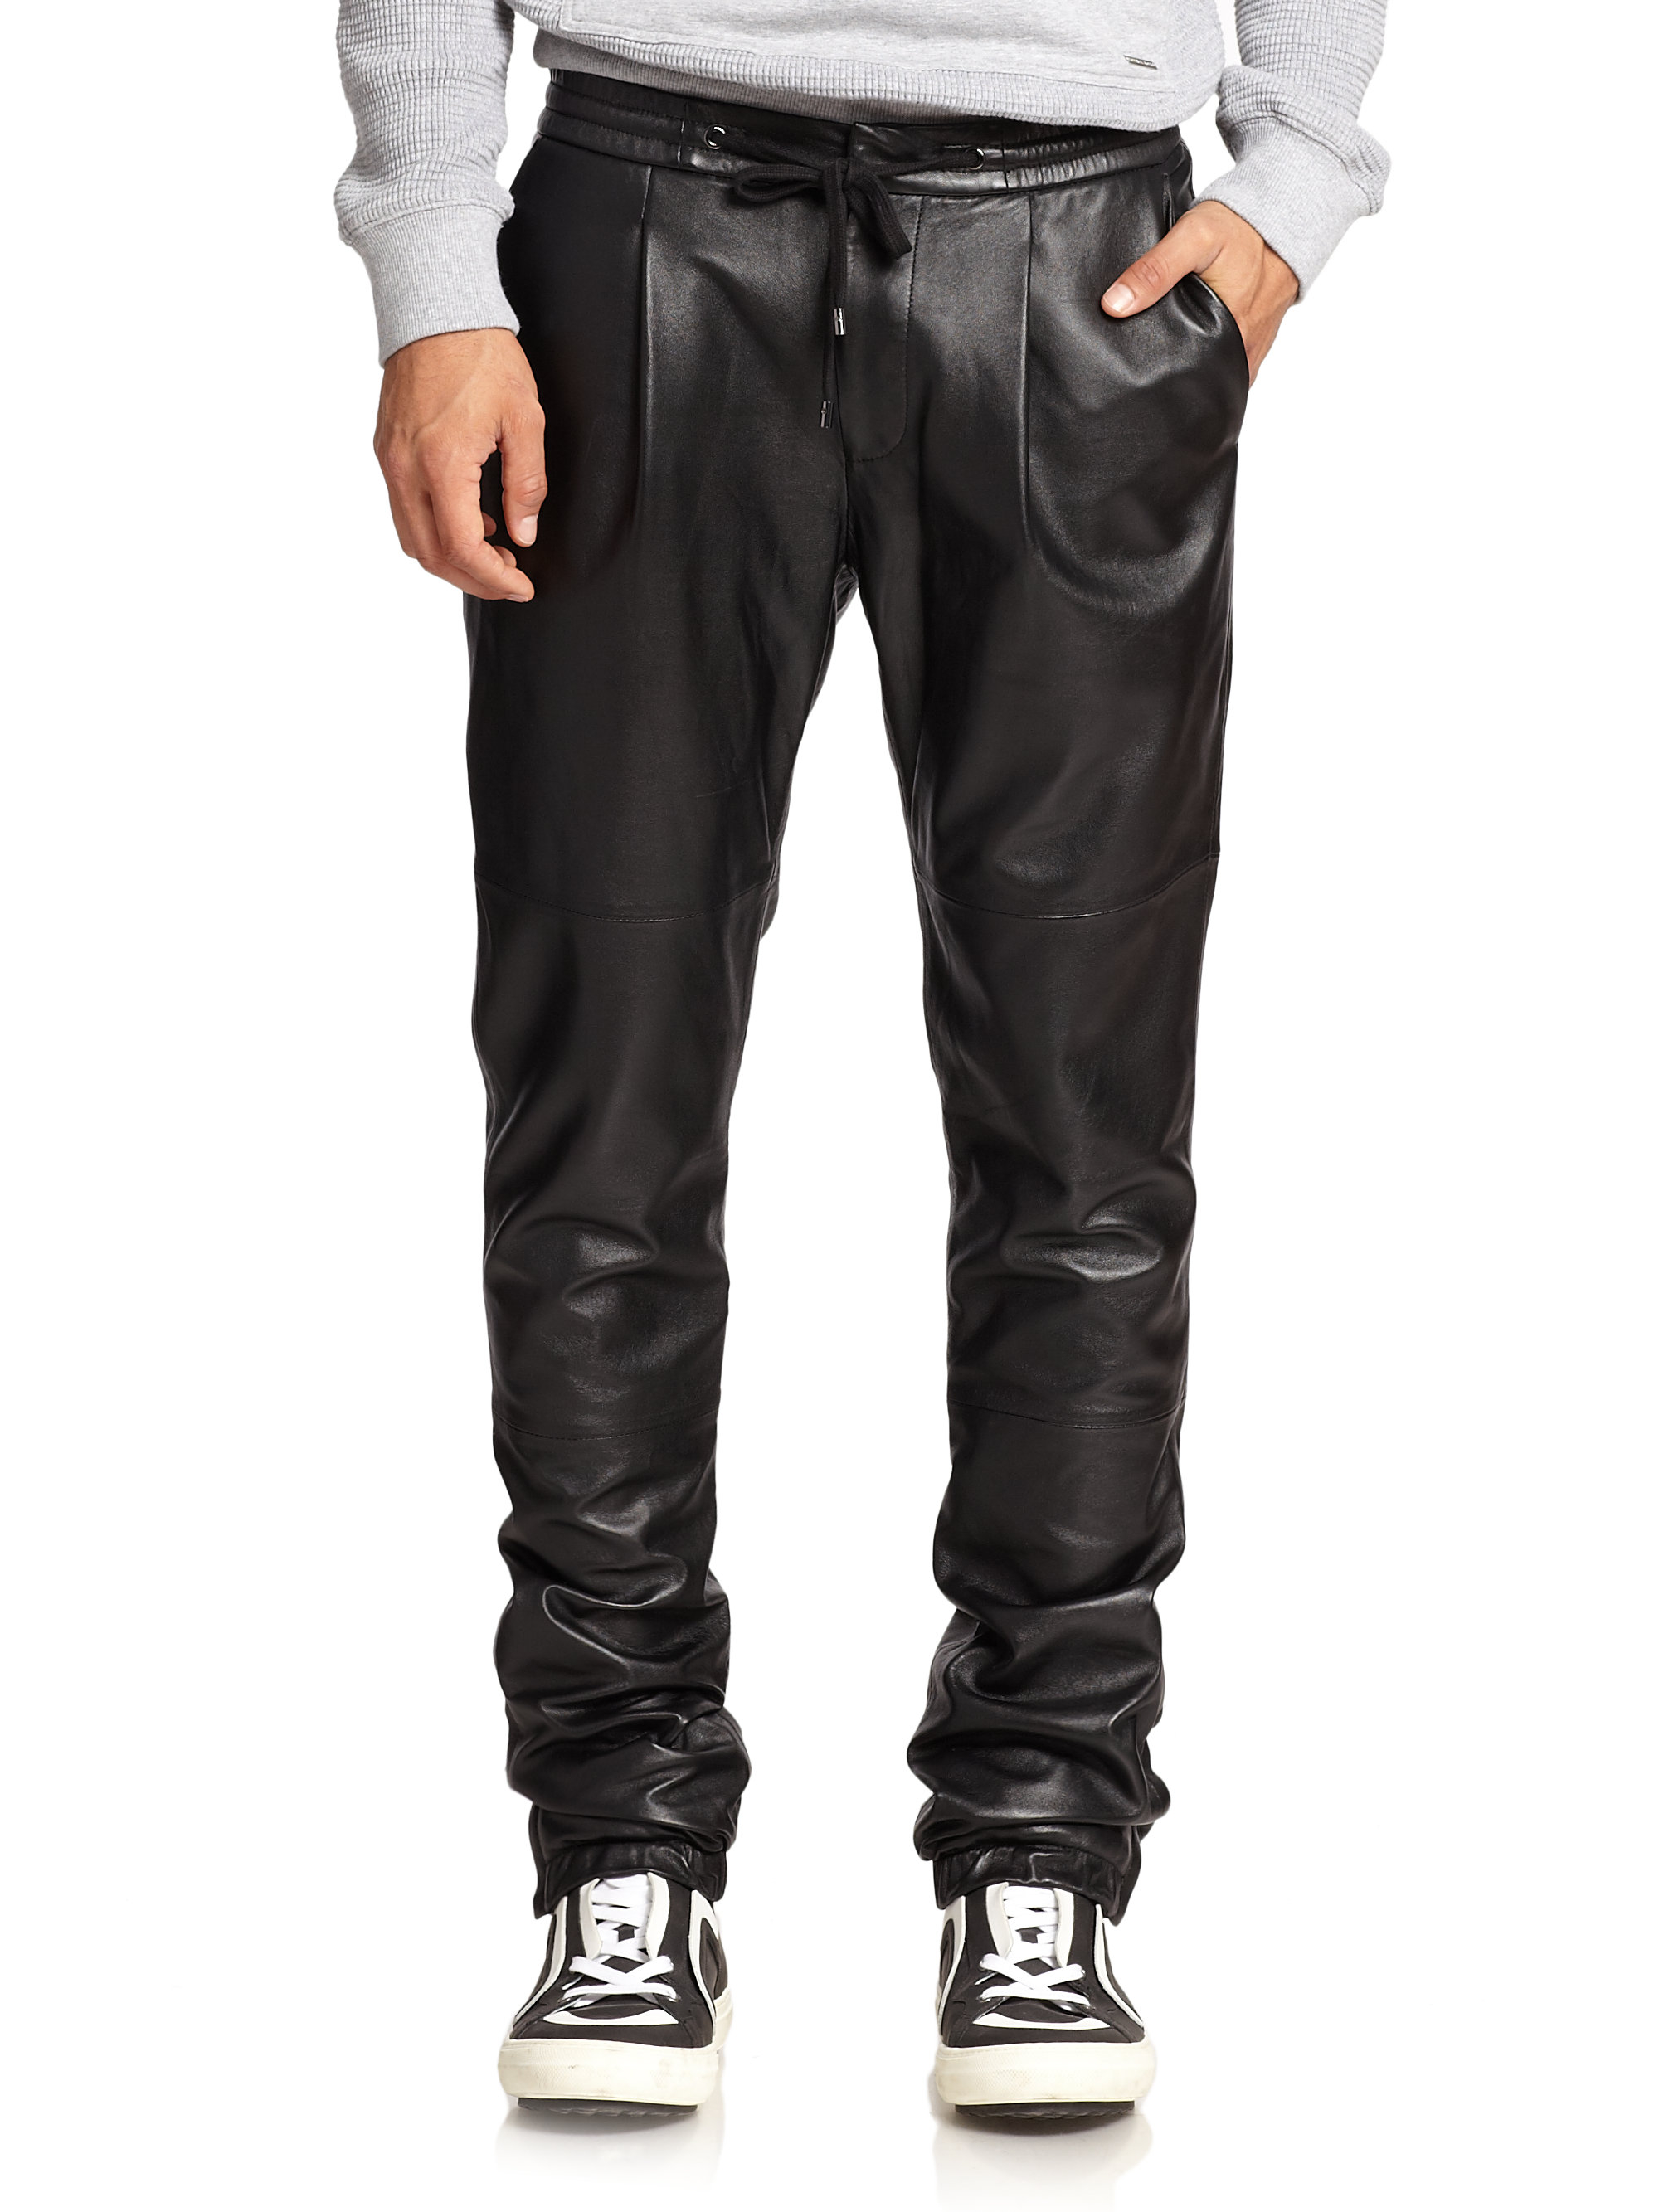 Lyst Michael Kors Leather Track Pants In Black For Men